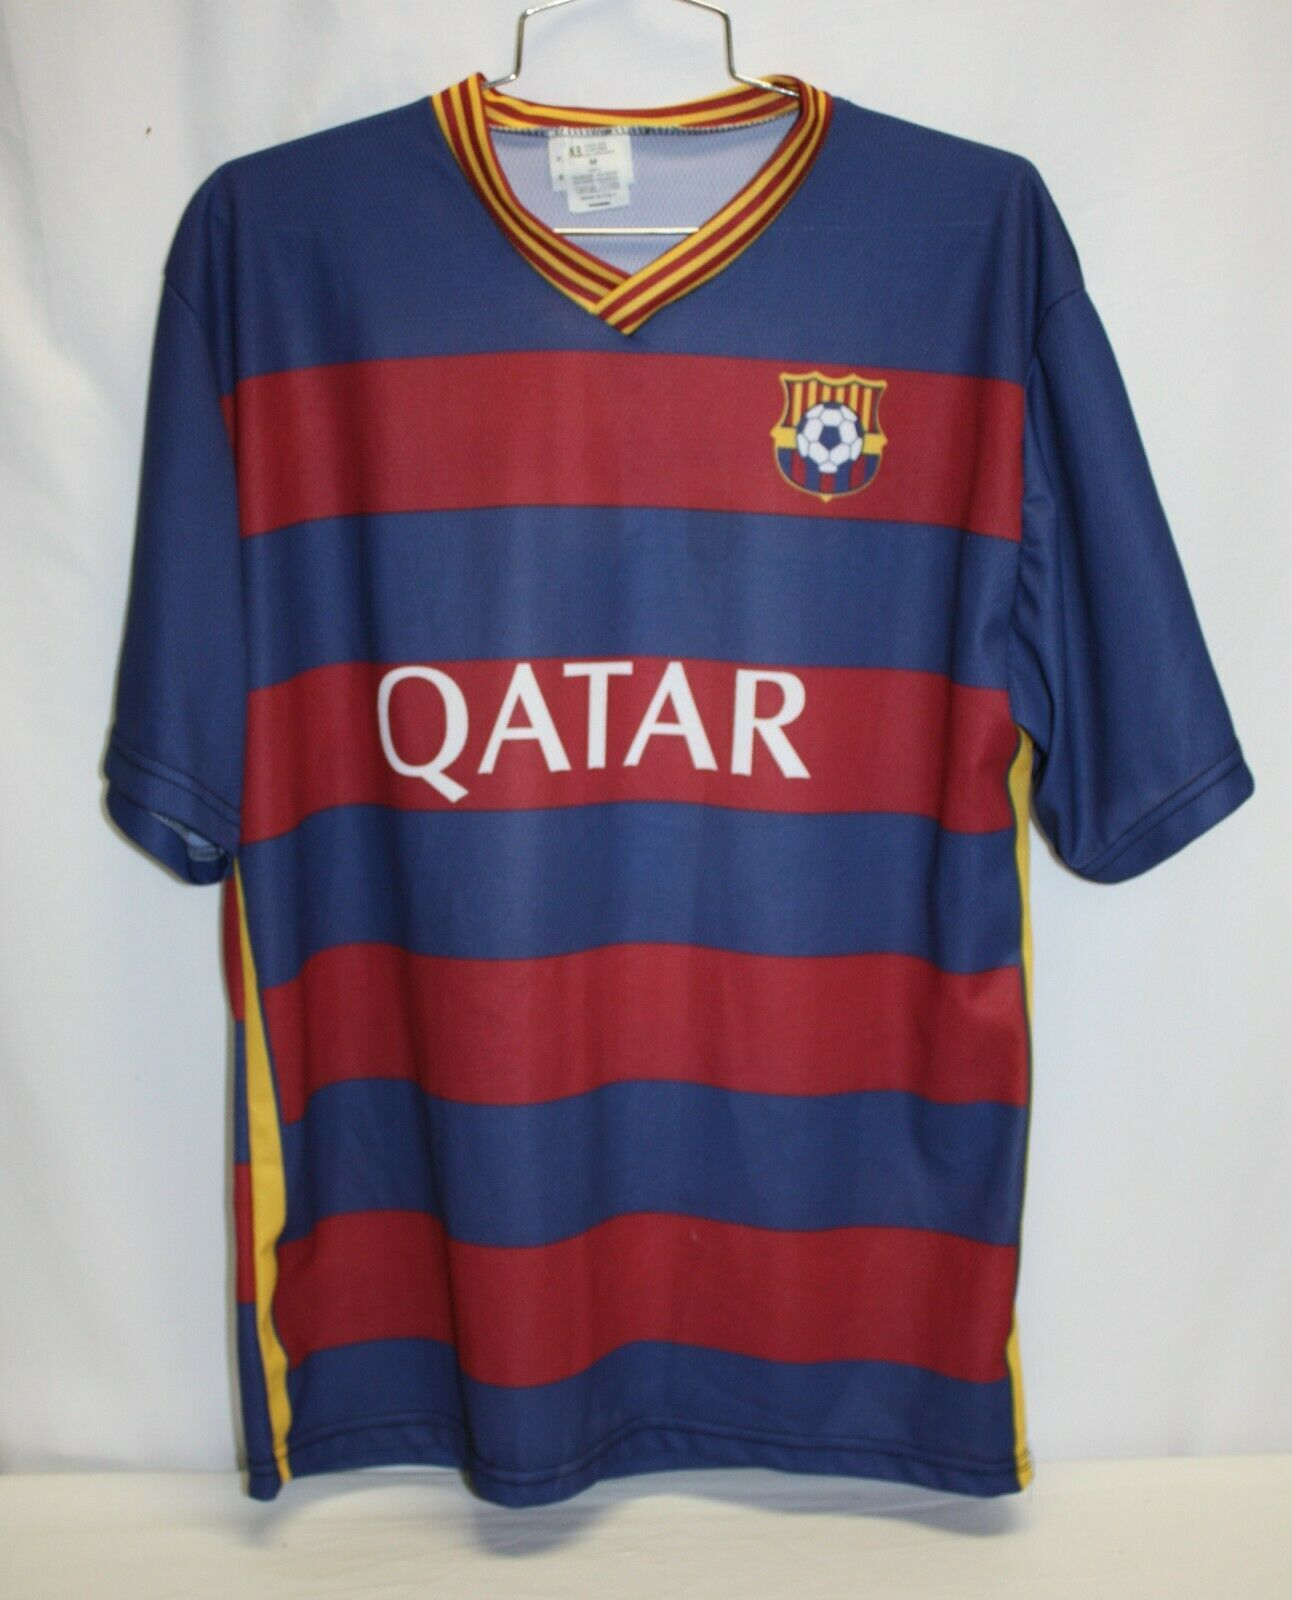 Primary image for NIKE Youth FCB Qatar Airways 11 Neymar JR Football Soccer Jersey Size L NEW